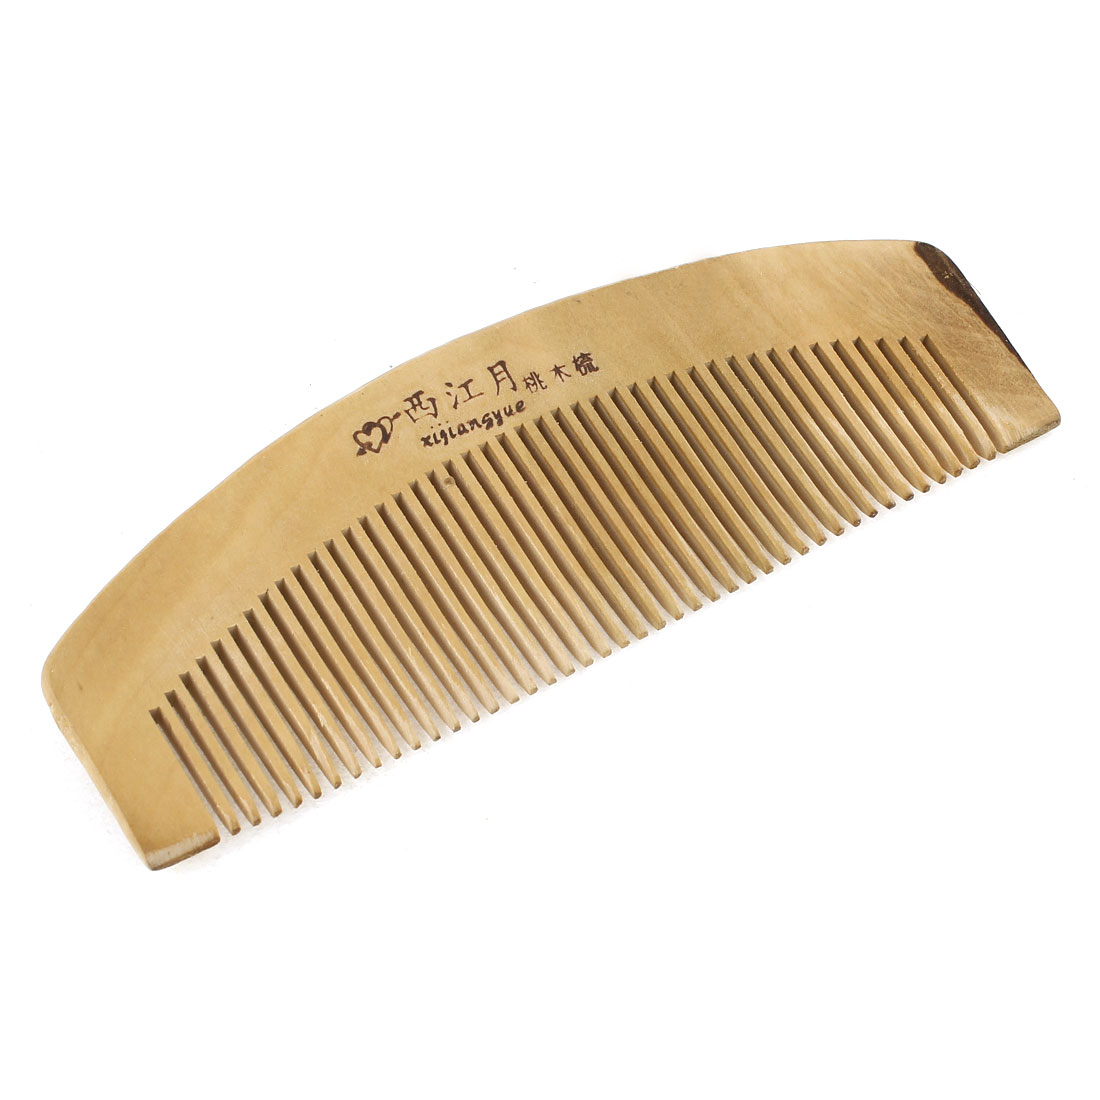 "5.7"" Length Dual Head Wooden Toothed Anti-static Hair Comb for Women"